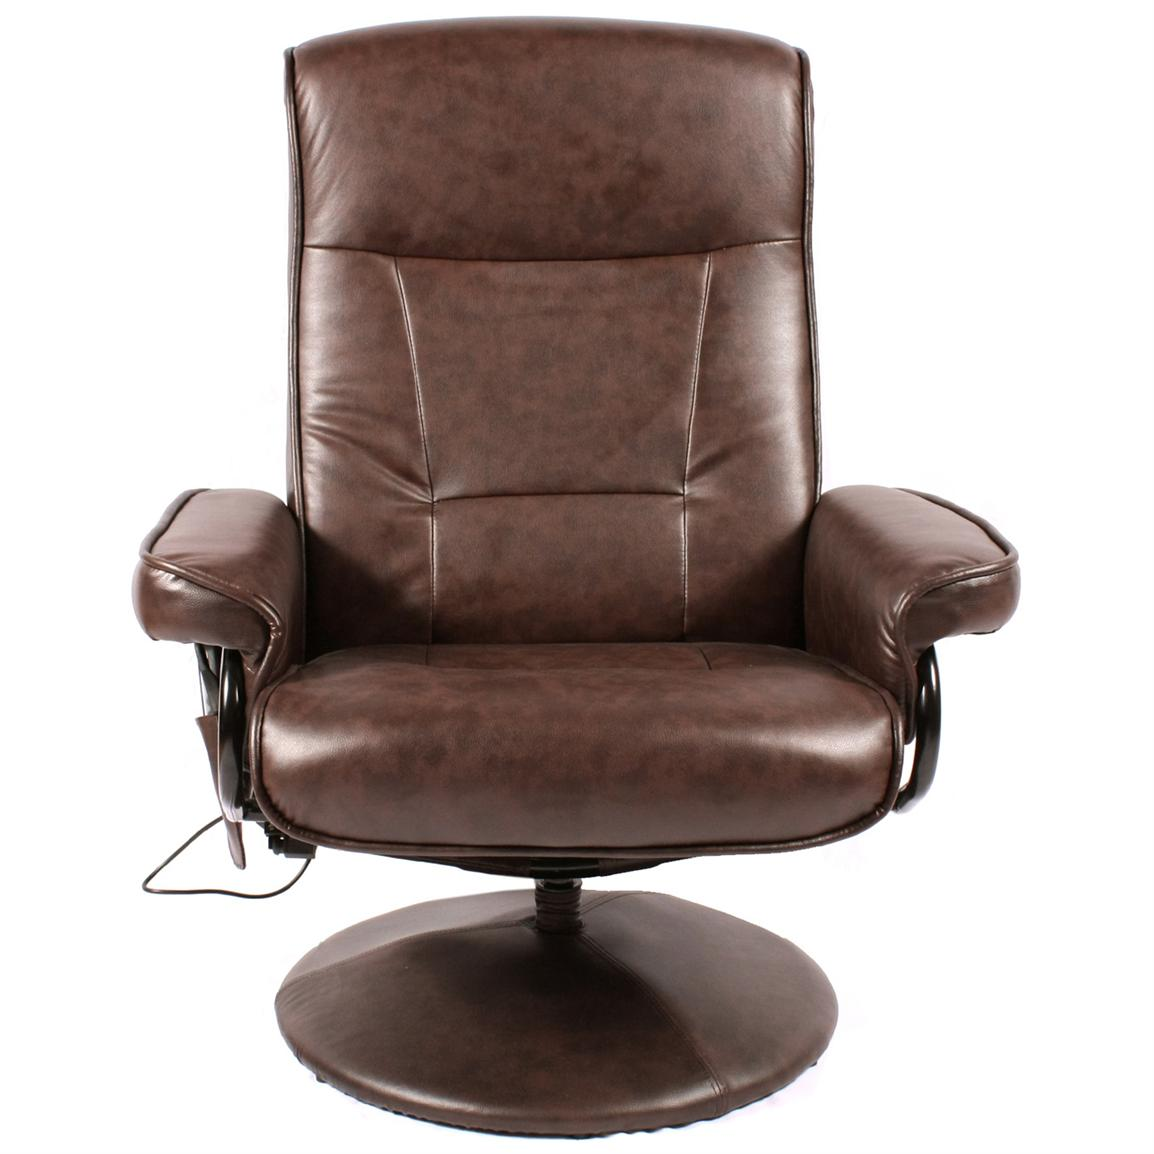 Comfort Products Leisure Recliner with 8-Motor Massage and Heat, Front